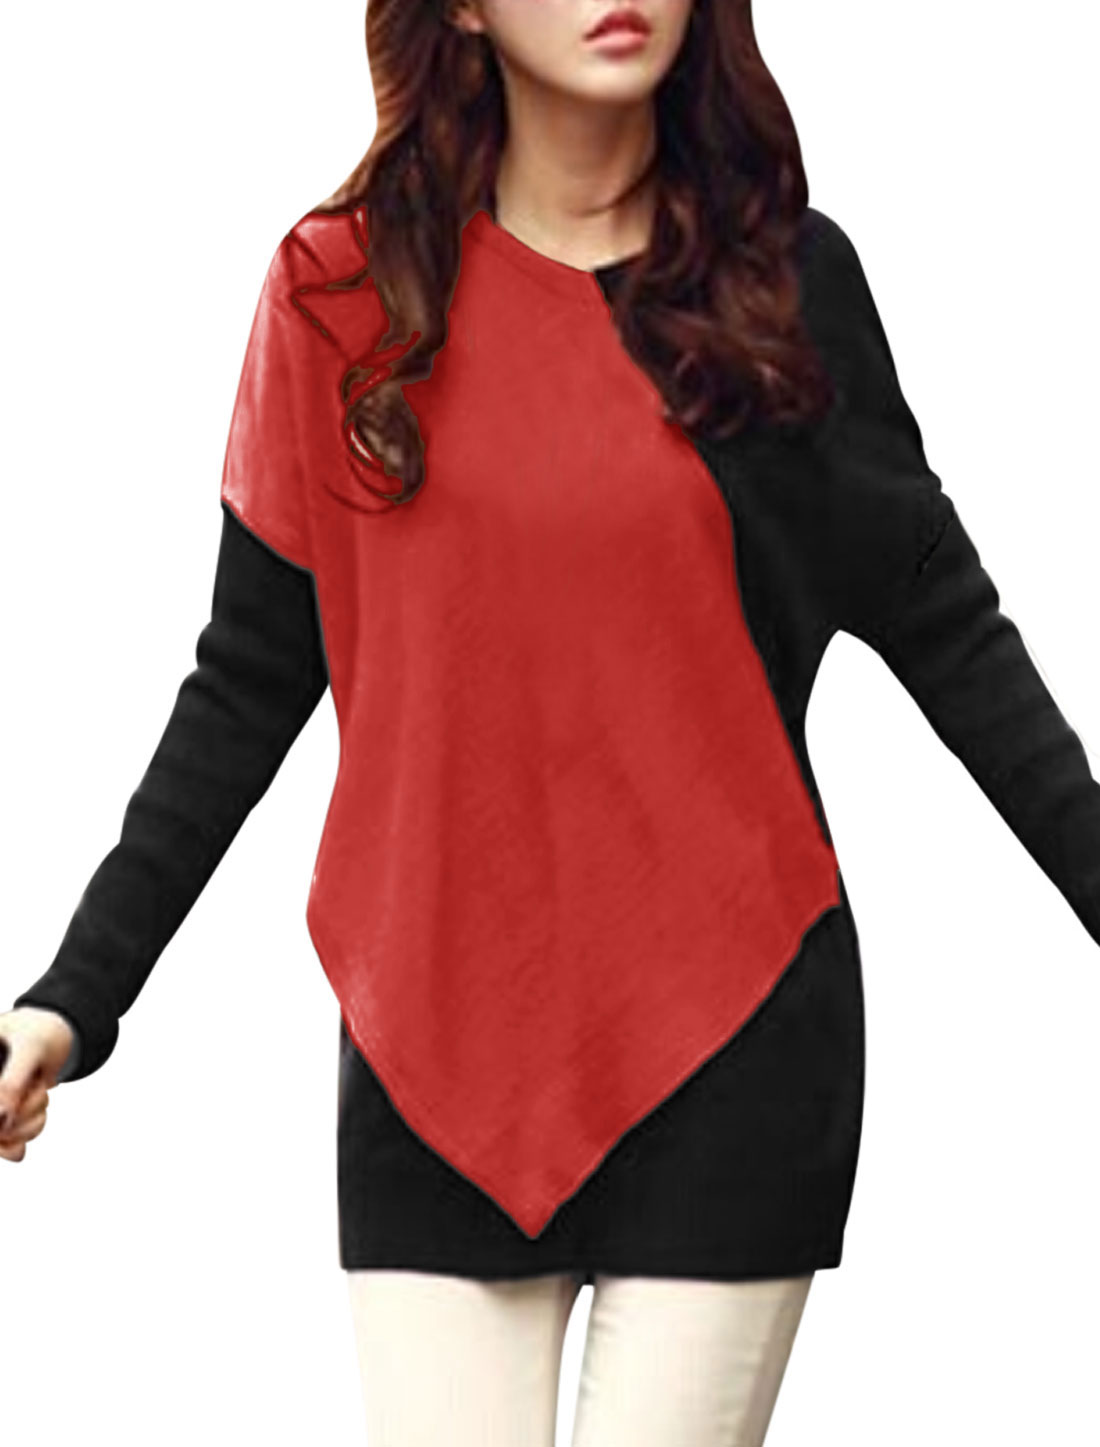 Women Batwing Sleeves Contrast Color Pullover Casual Tunic Blouse Red Black S